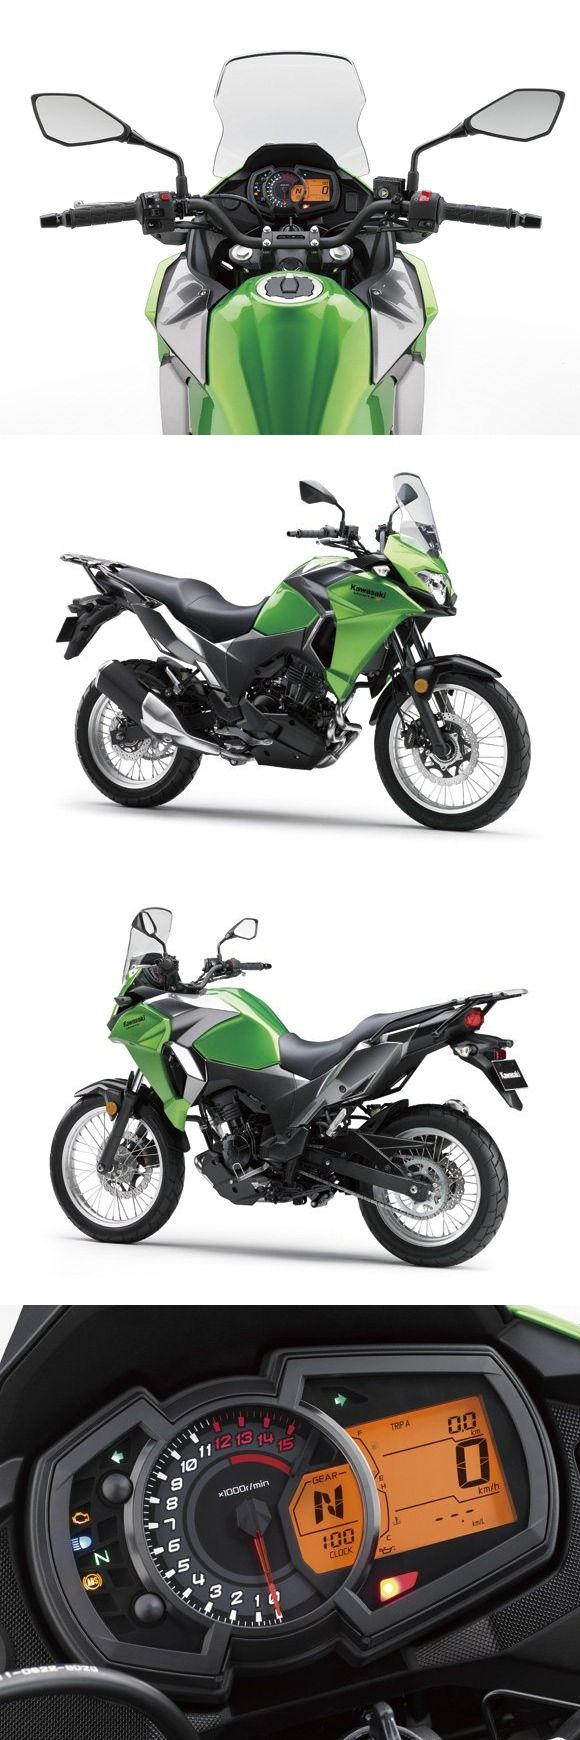 Kawasaki Versys Officially Launched in India,